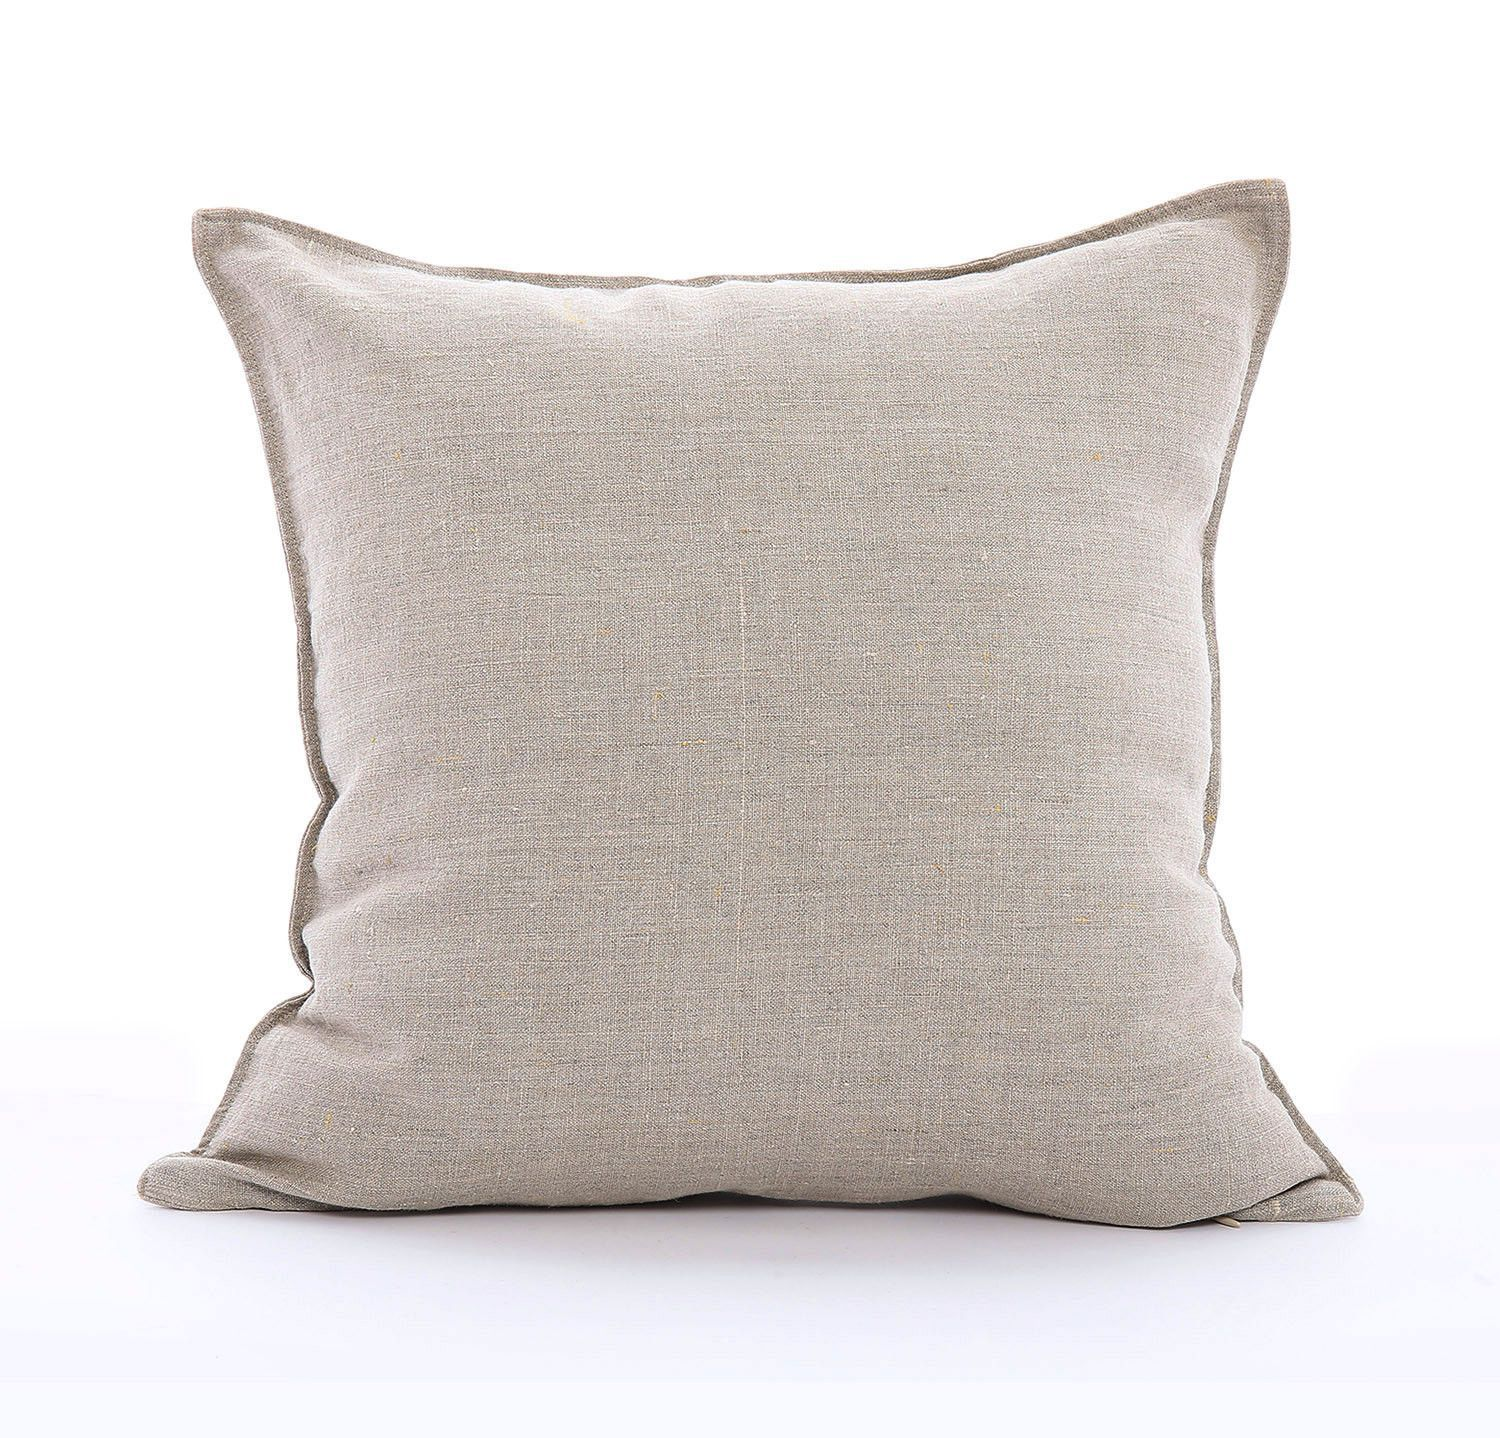 White Linen Pillow Cover Solid Pillow